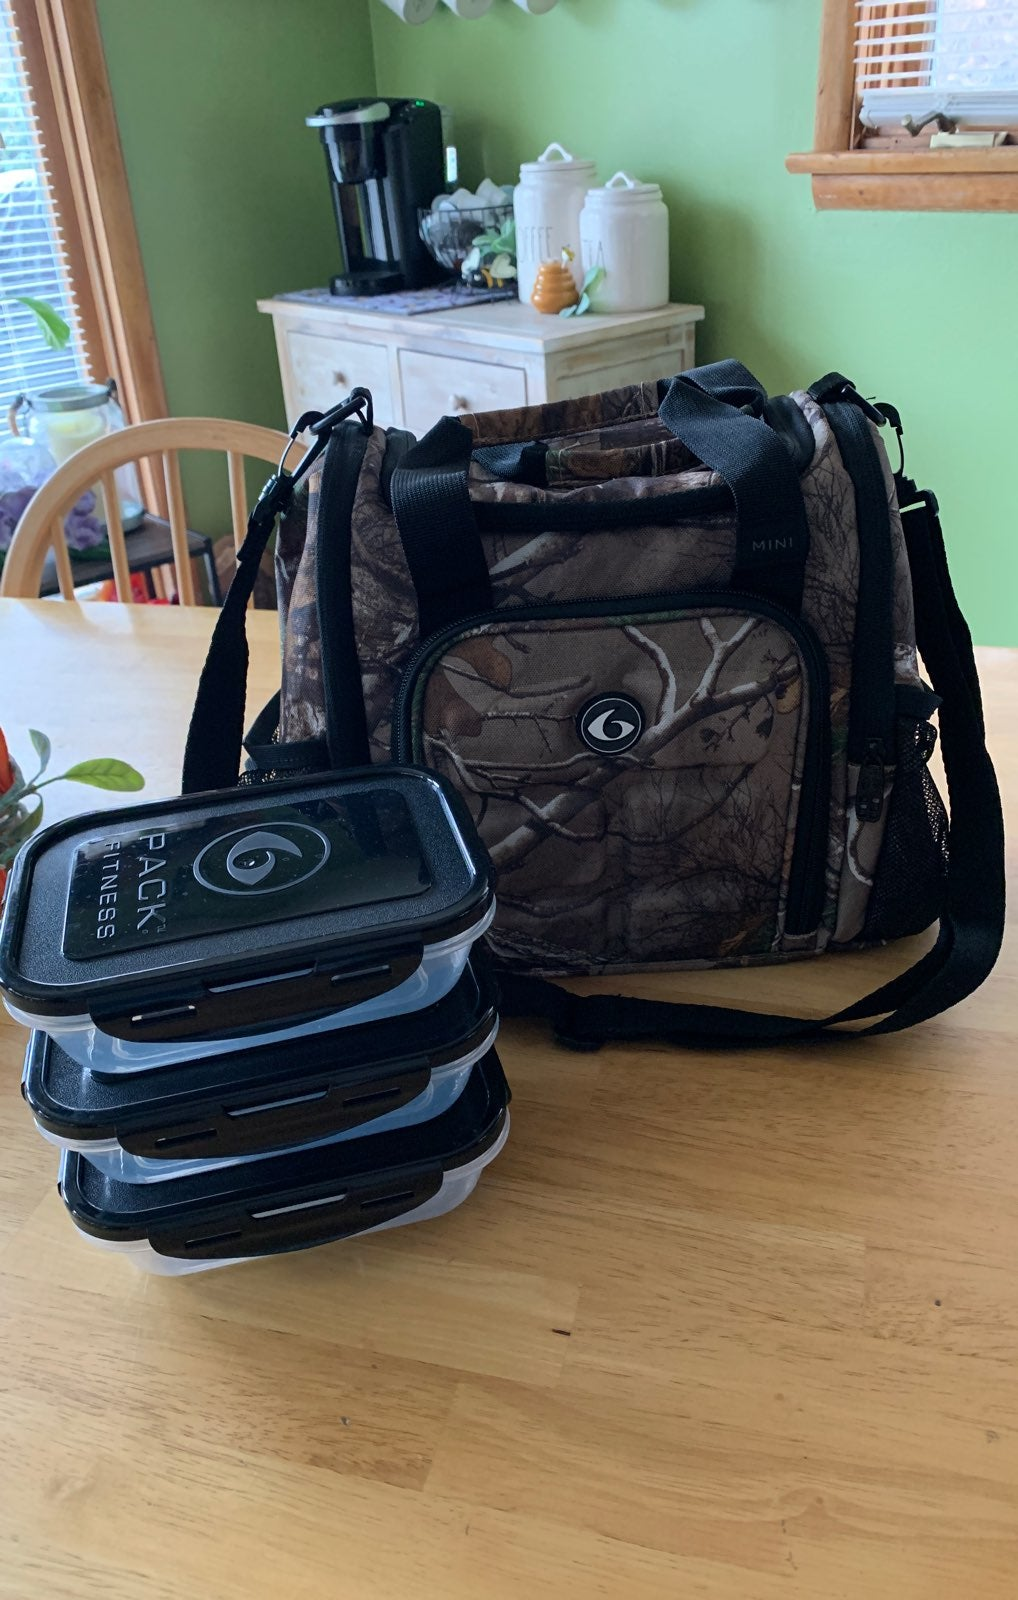 Six Pack Fitness Meal Bag